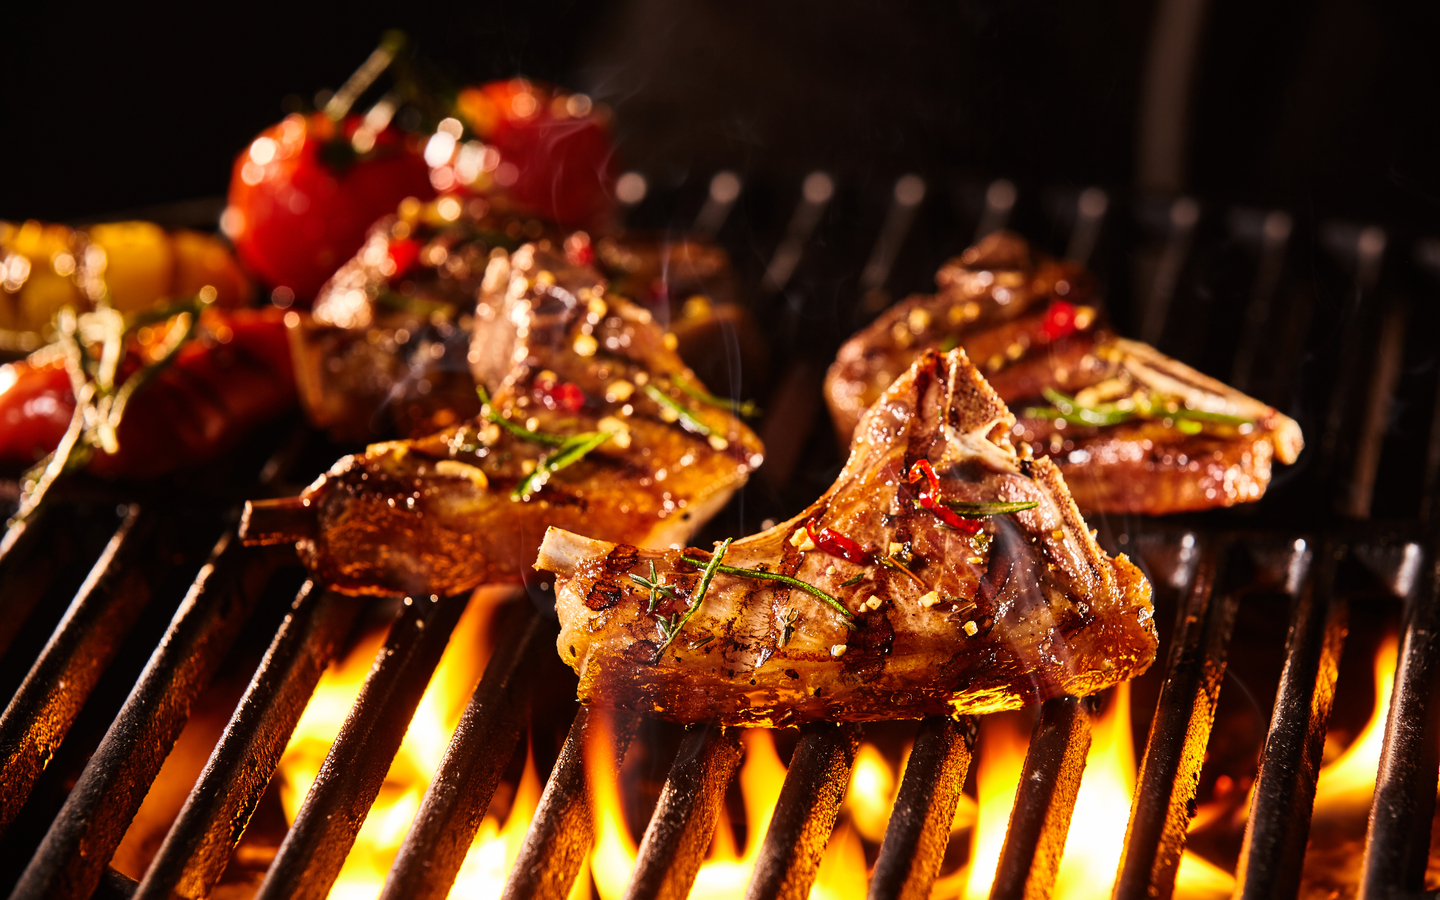 You can't find lamb chops as tasty as it here in Waka restaurant & Bar in Business Bay